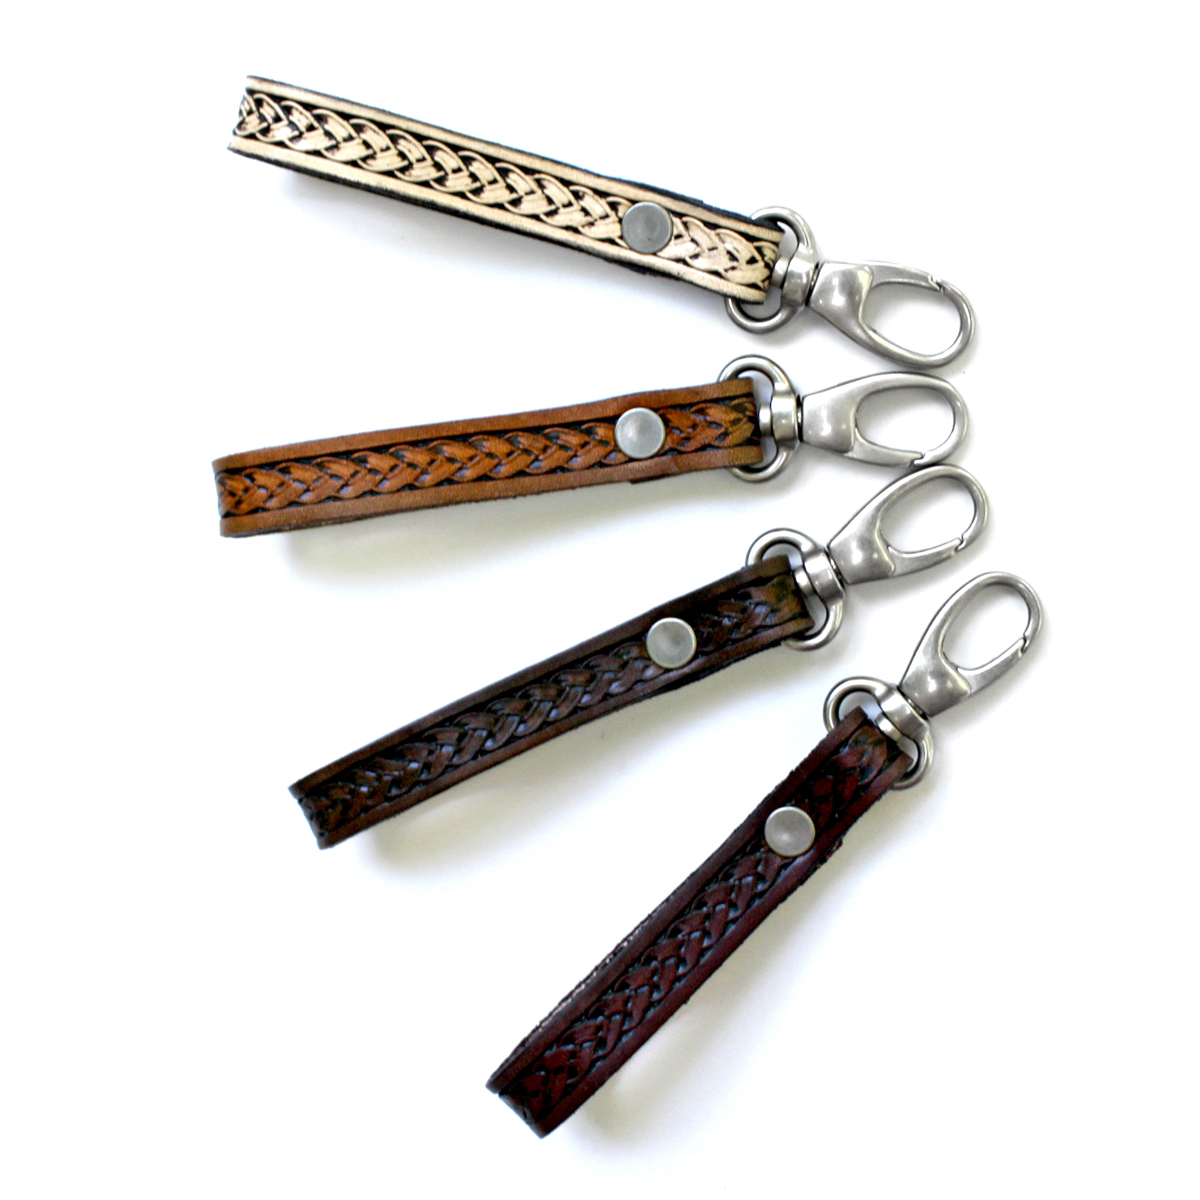 weave-stamp-leather-key-fob-the-leather-smithy_1WEB2